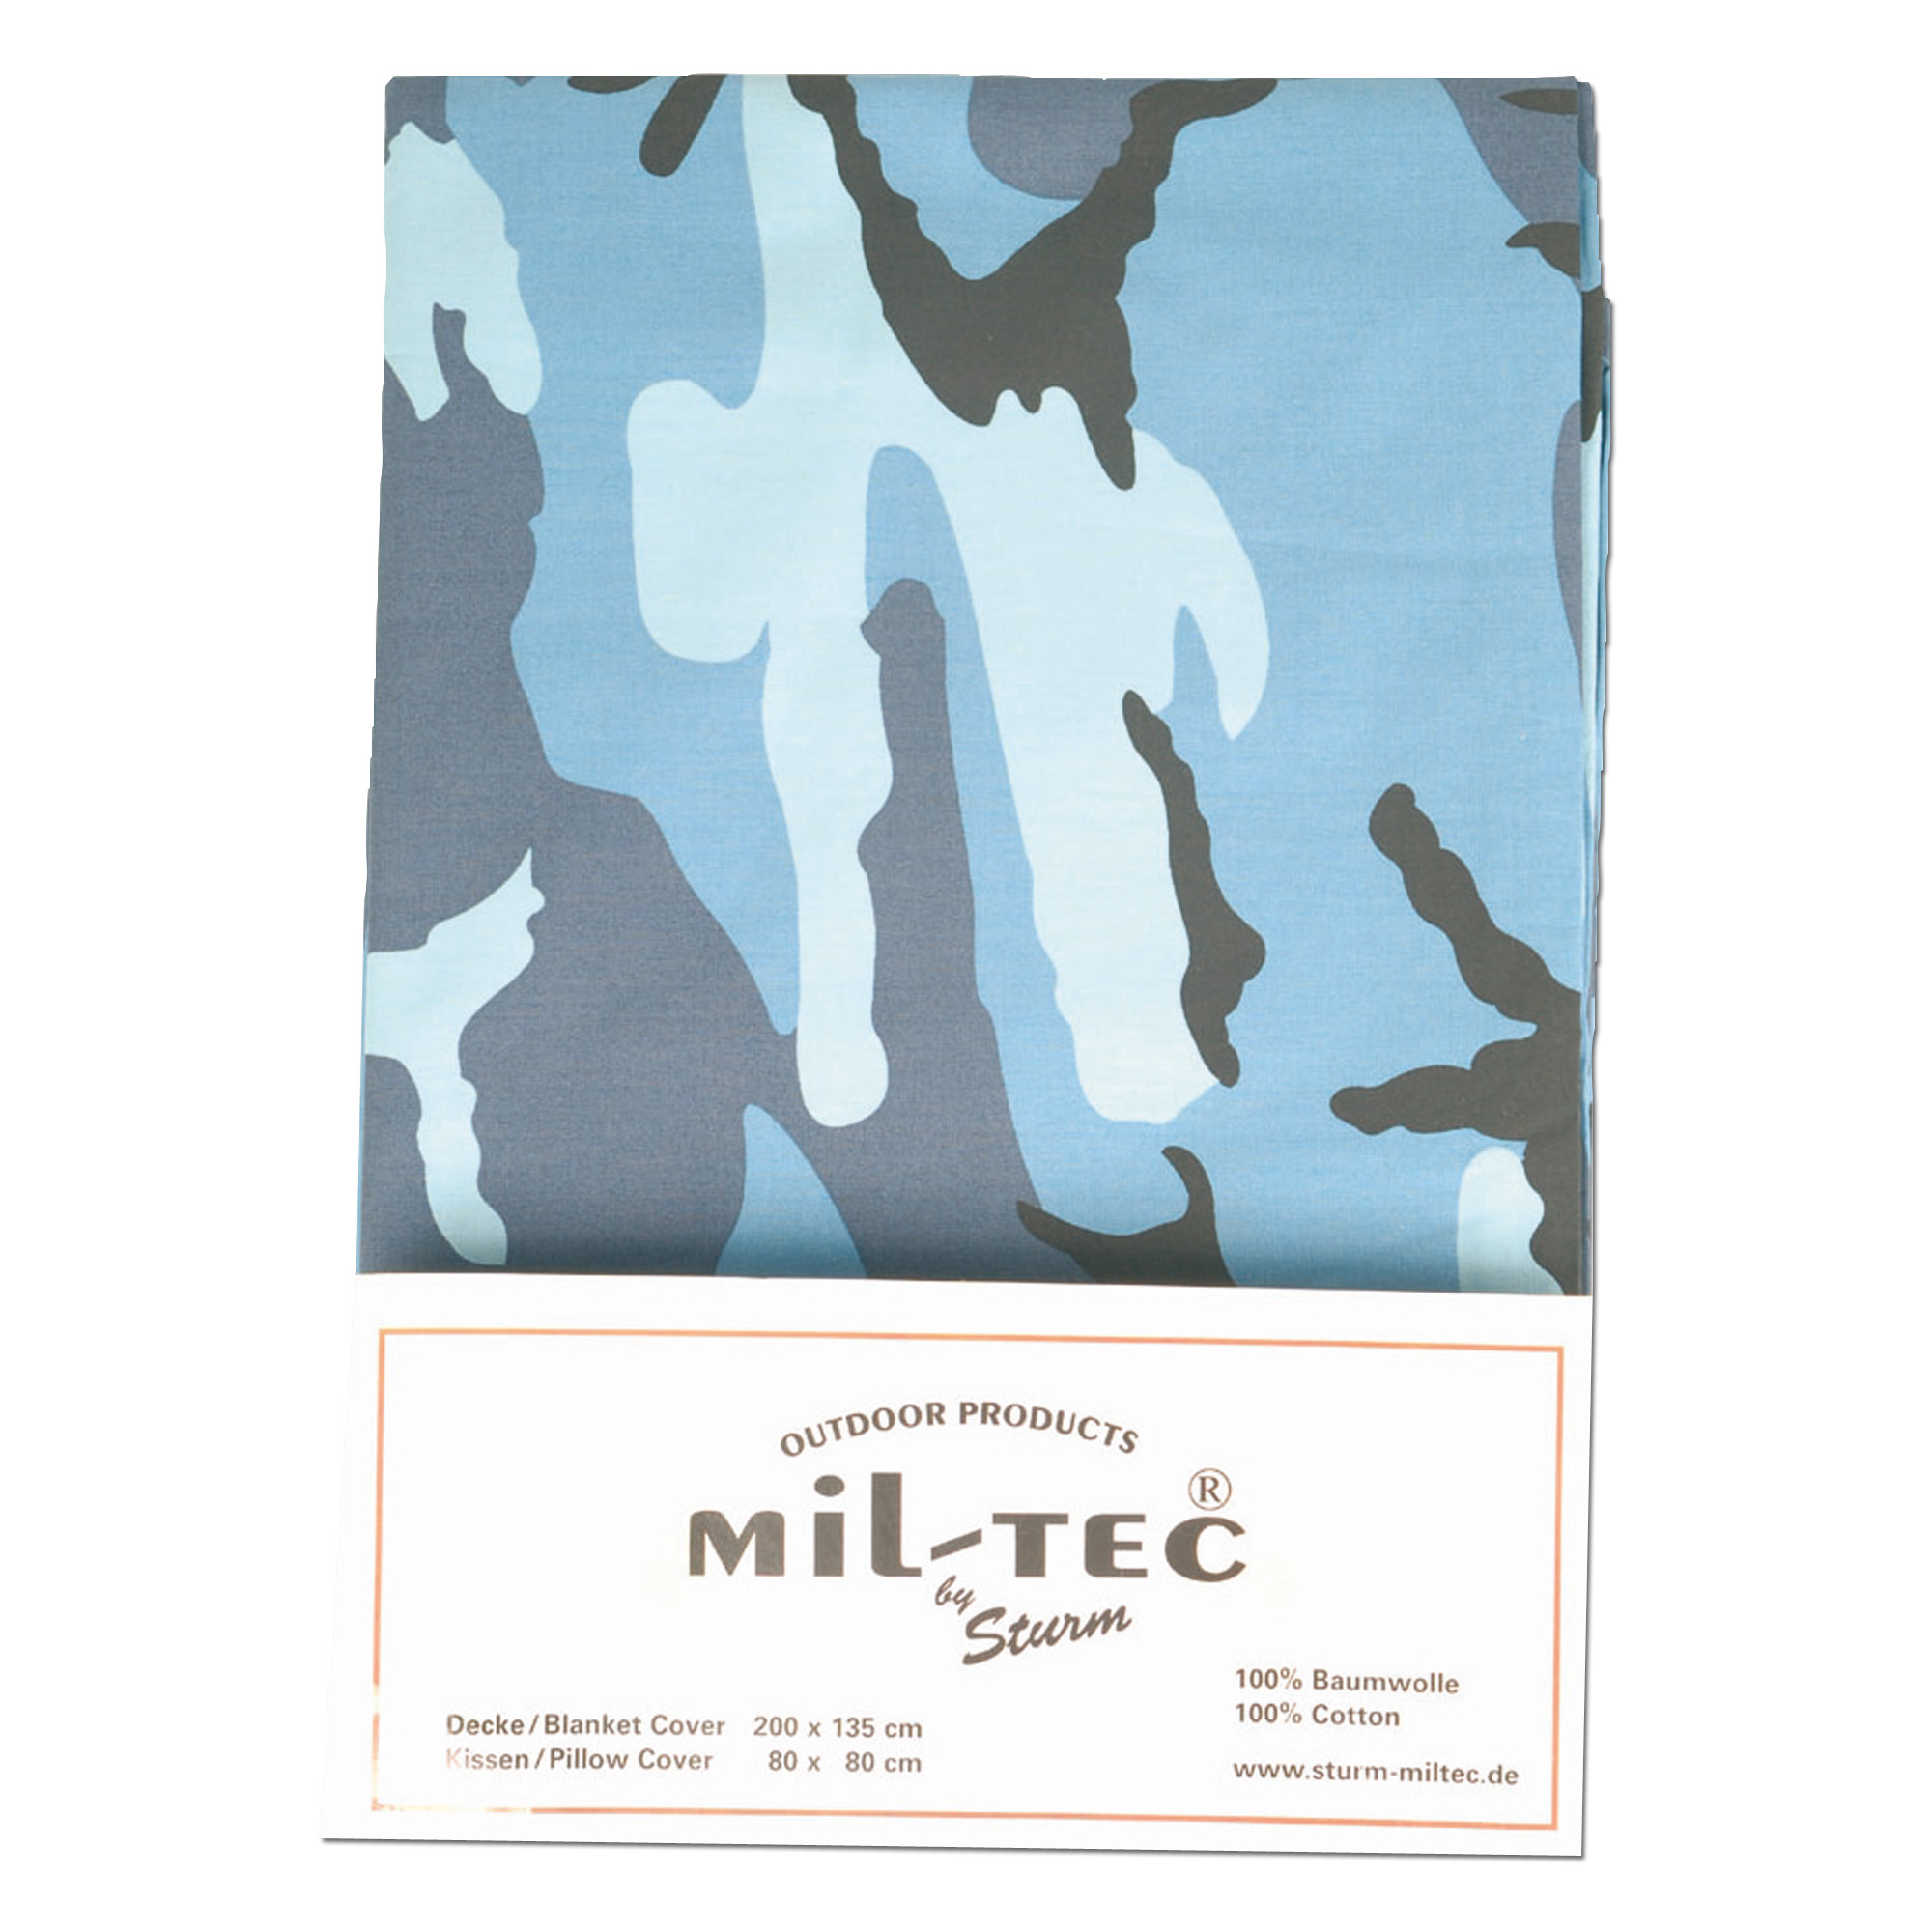 Bed cover and pillow Mil-tec skyblue